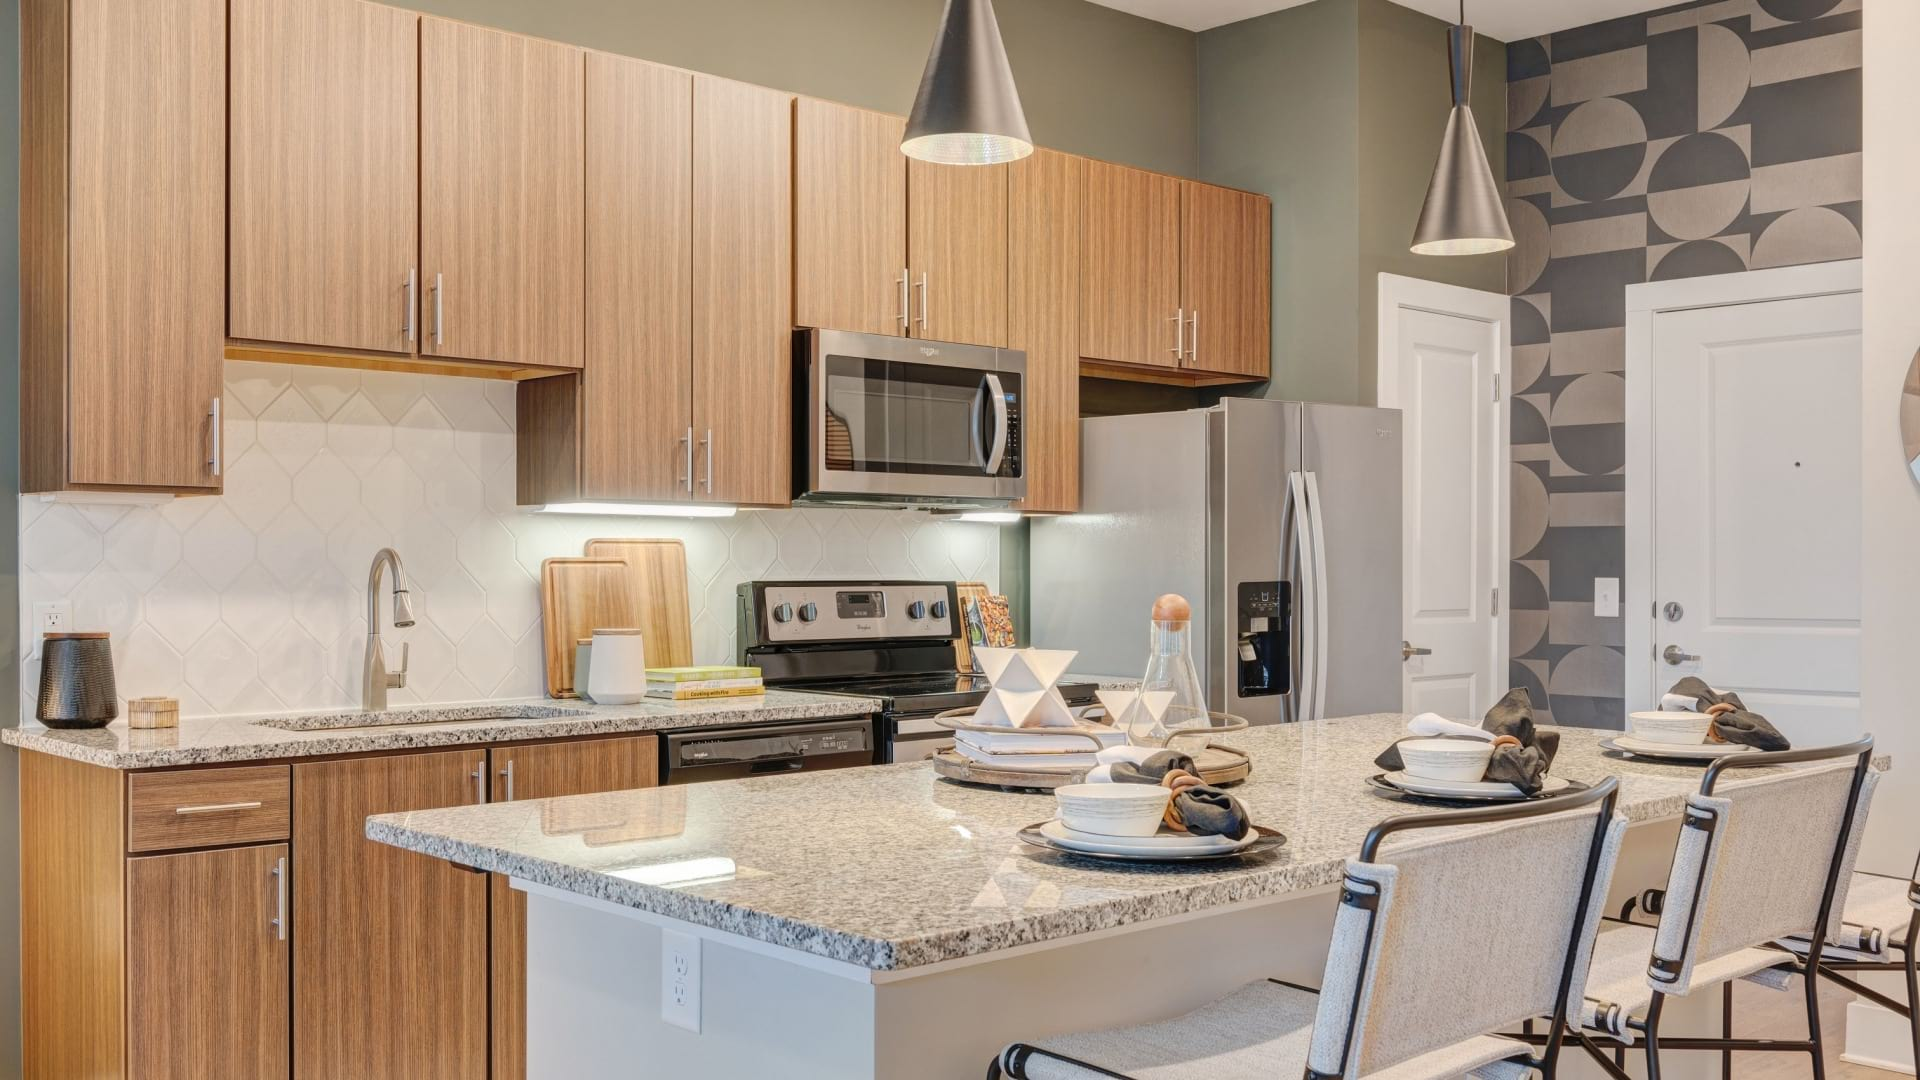 Luxury Apartments For Rent in Cary, North Carolina